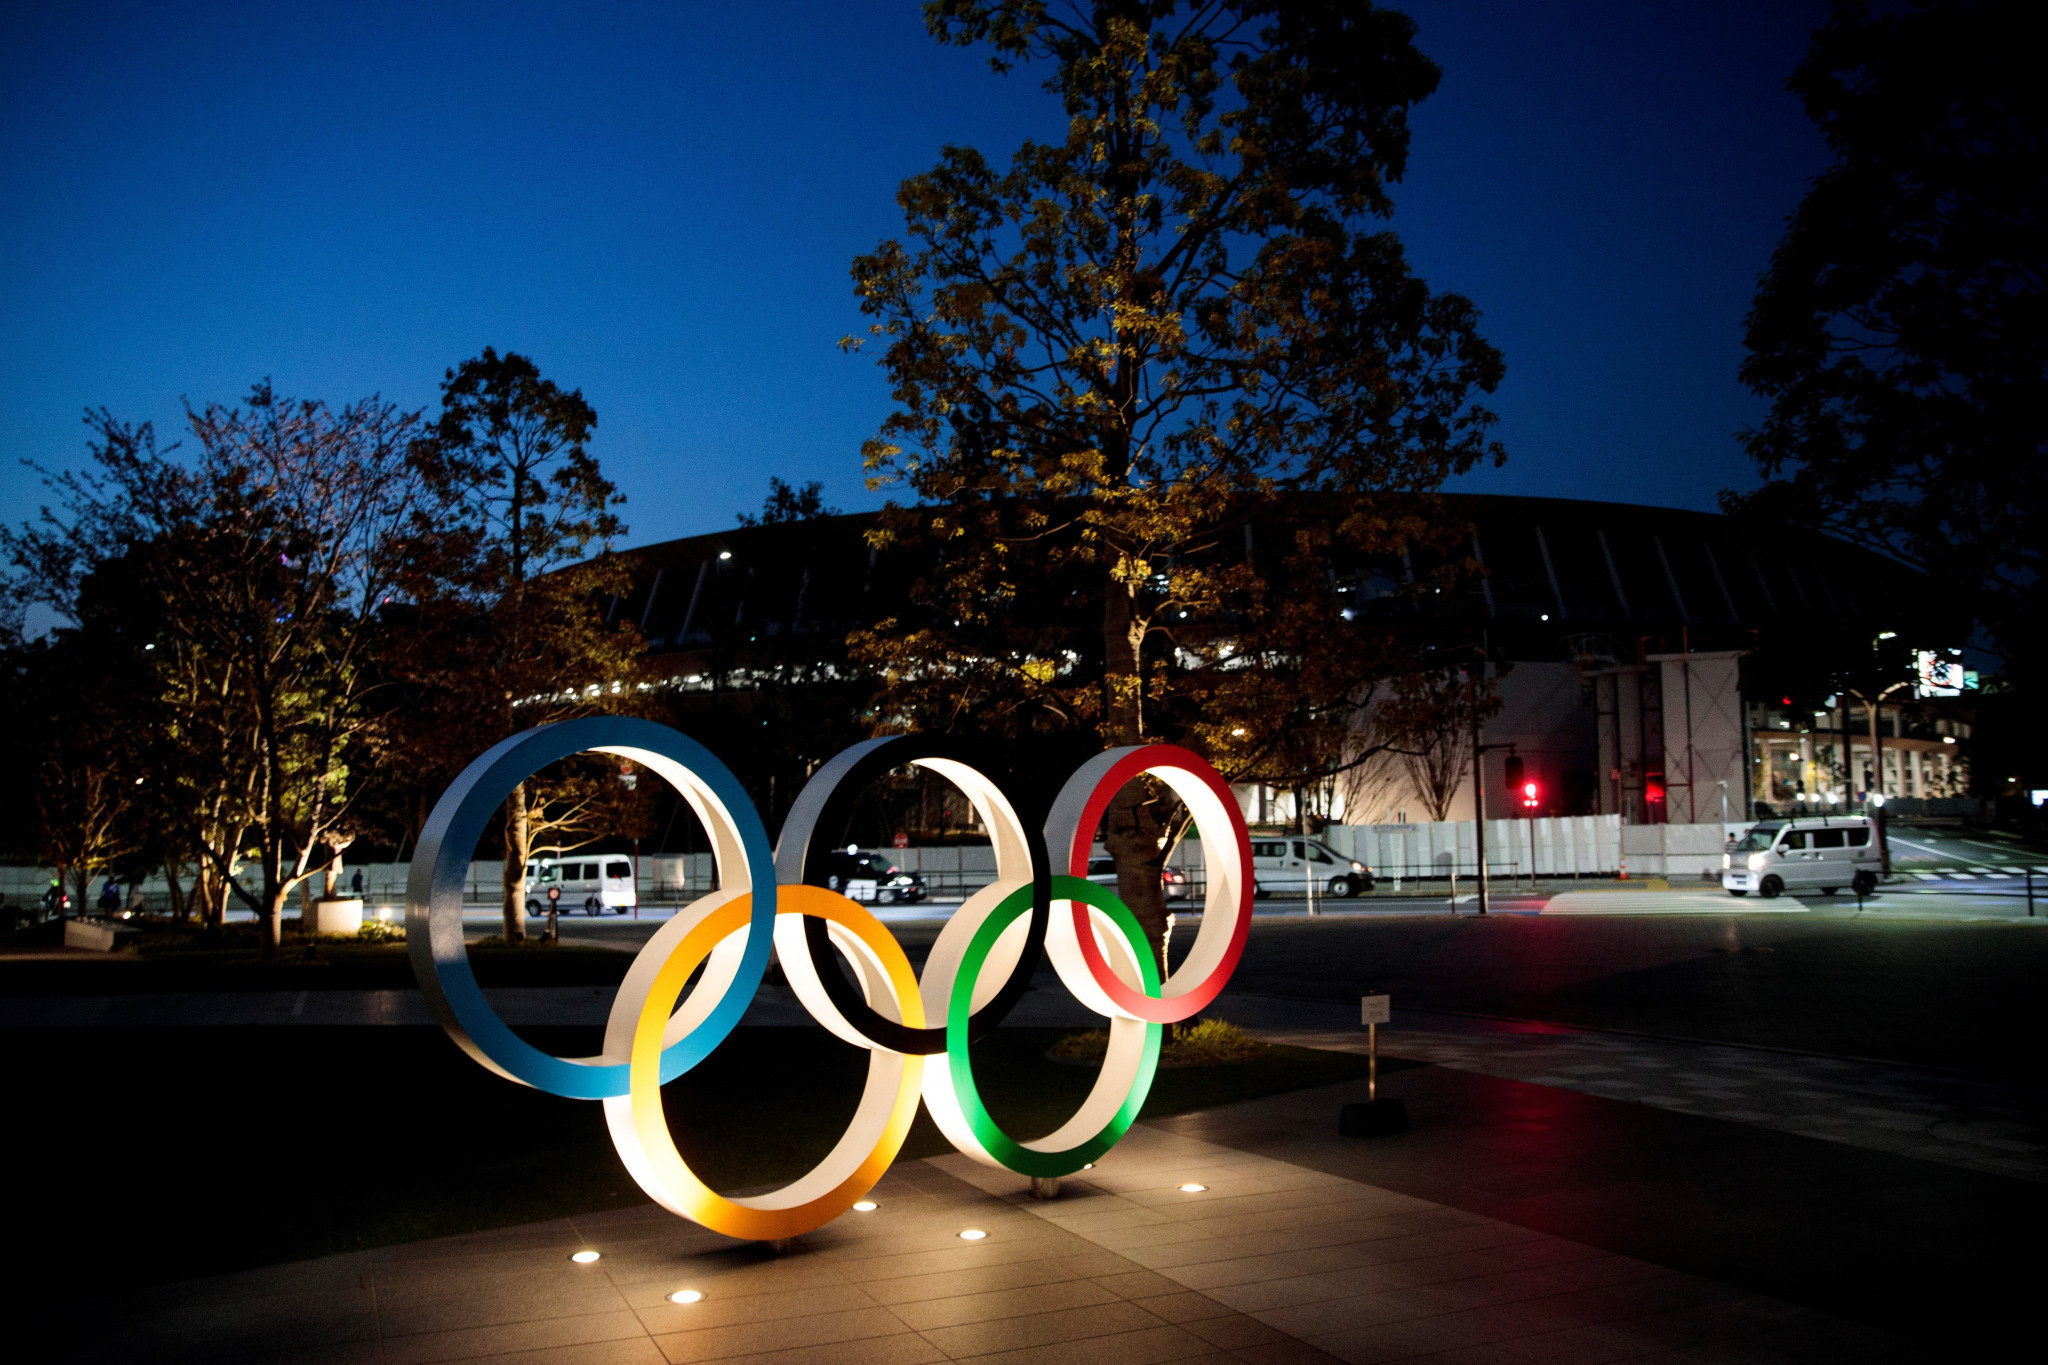 The International Olympic Committee and Tokyo 2020 have set-up a joint steering committee to deliver the Olympic and Paralympic Games in 2021 ©Getty Images